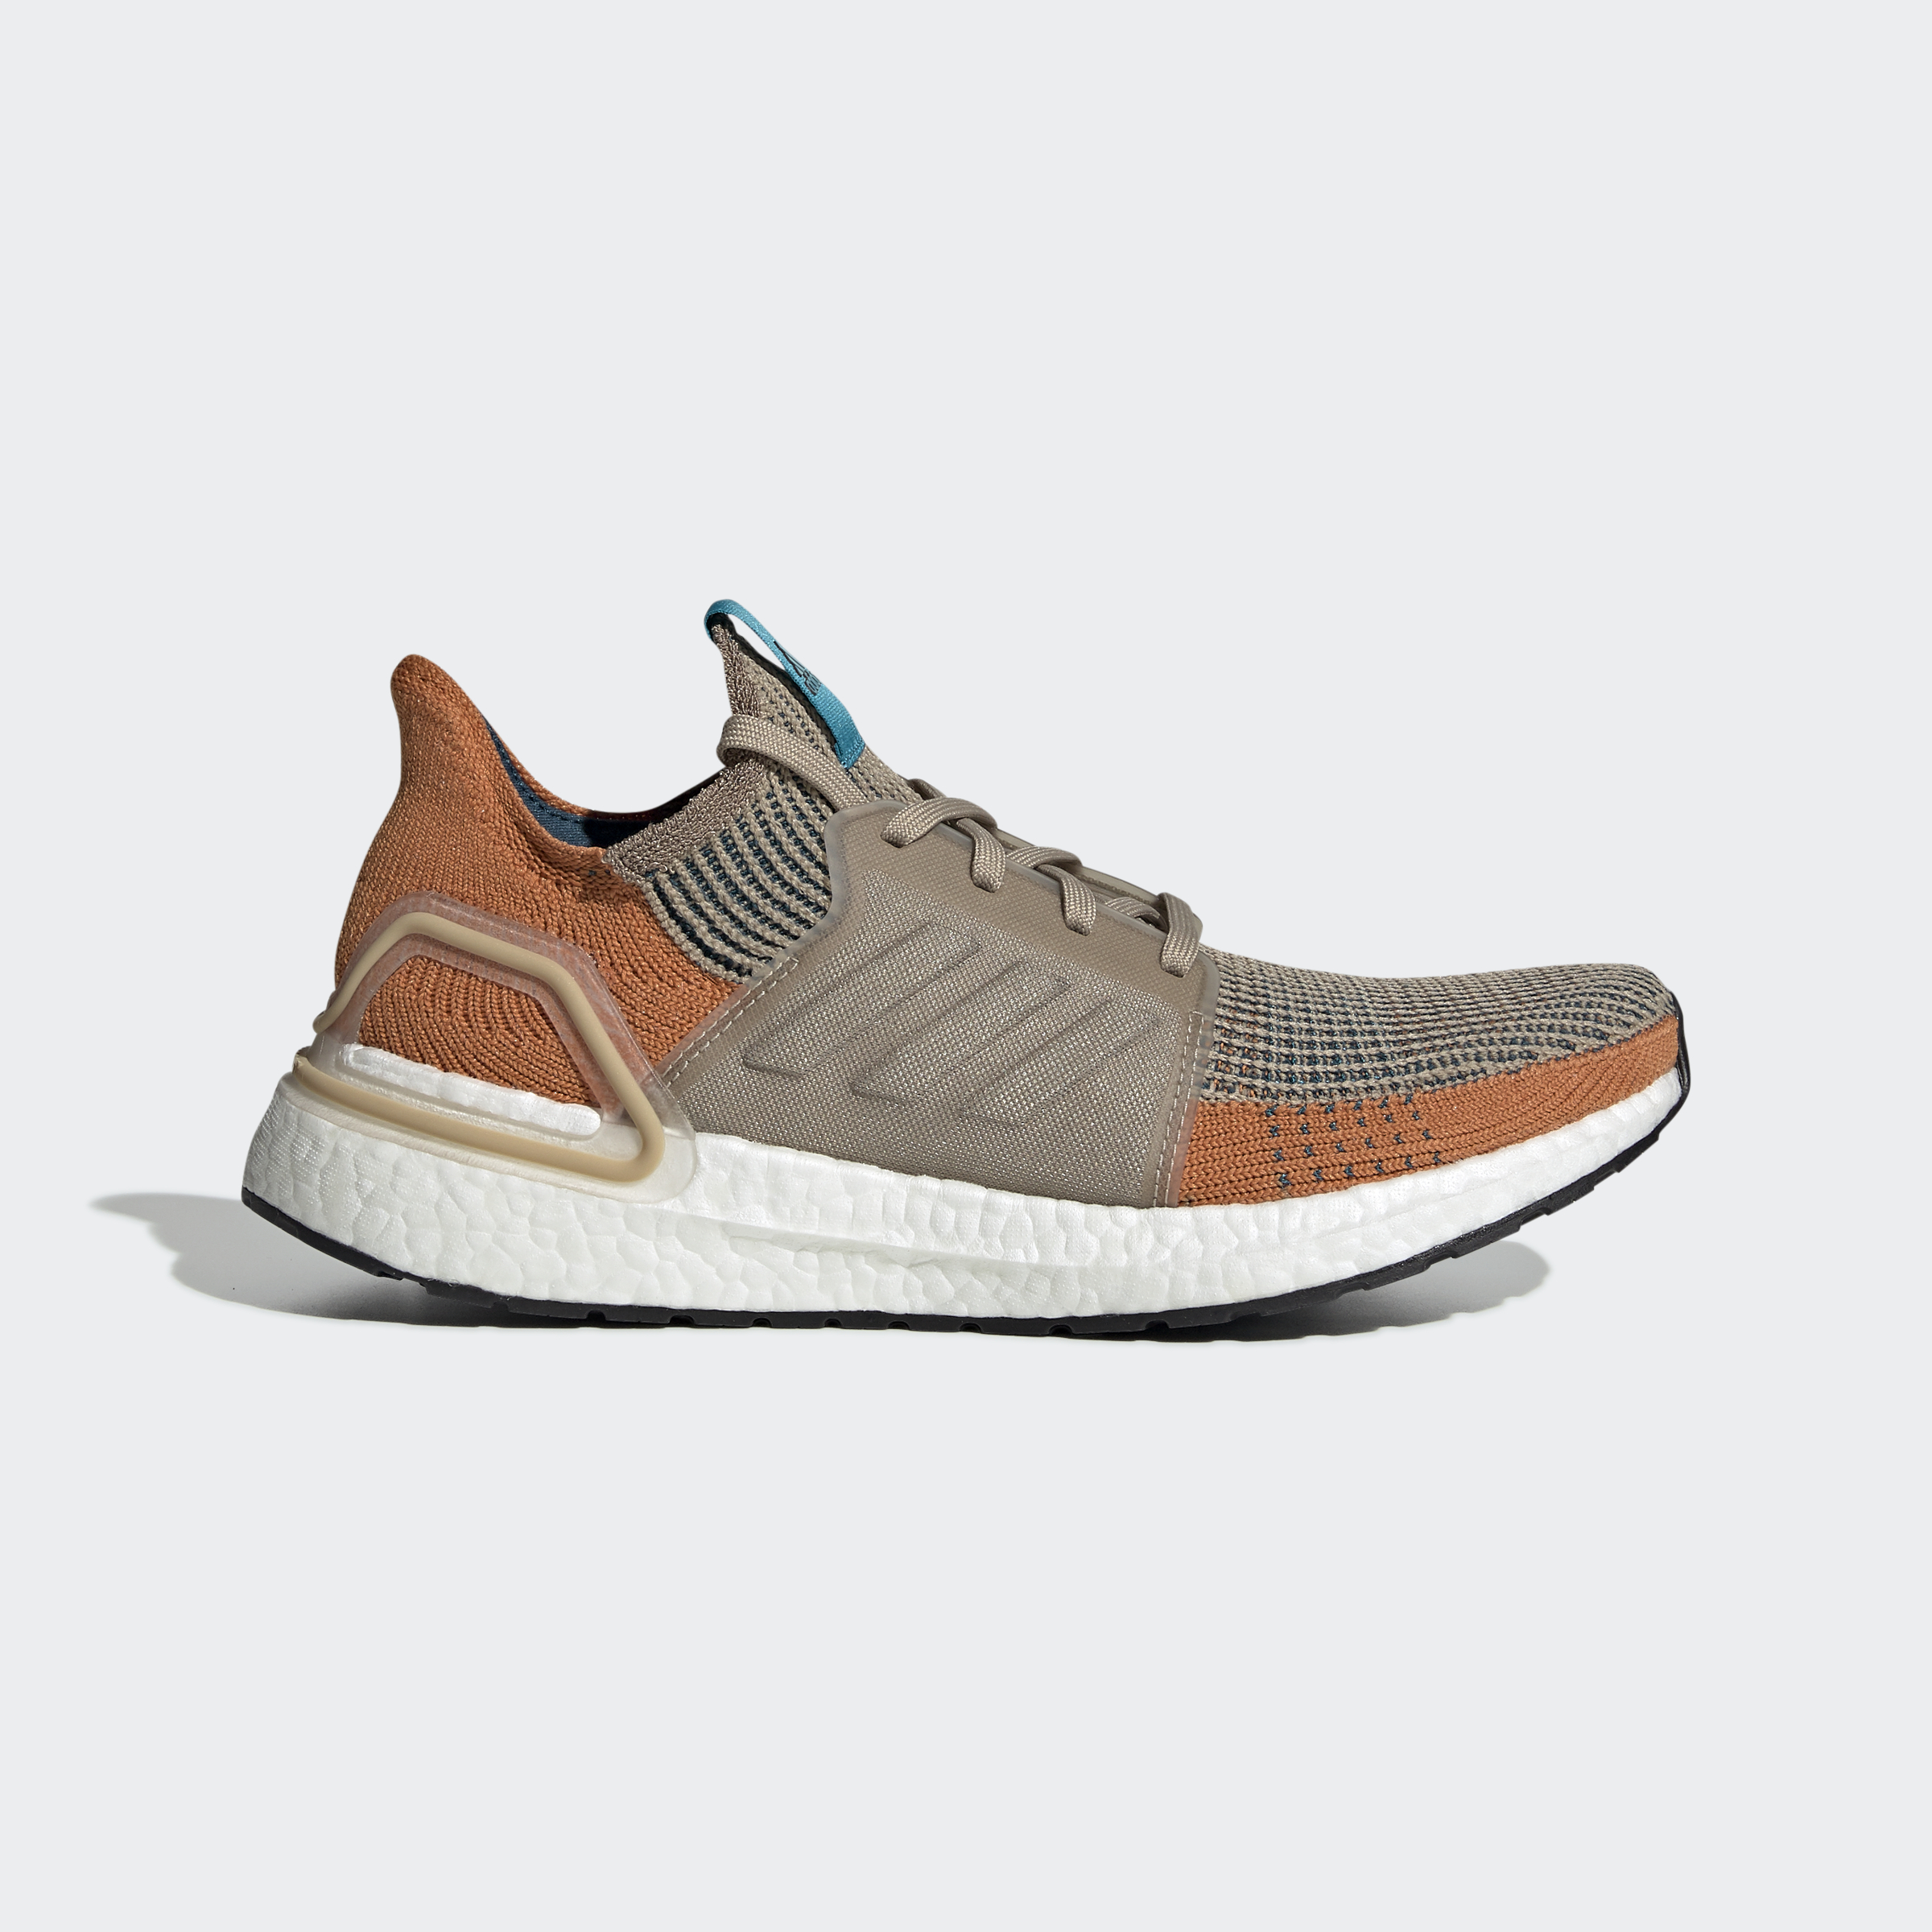 adidas-Ultraboost-19-Shoes-Athletic-amp-Sneakers thumbnail 111